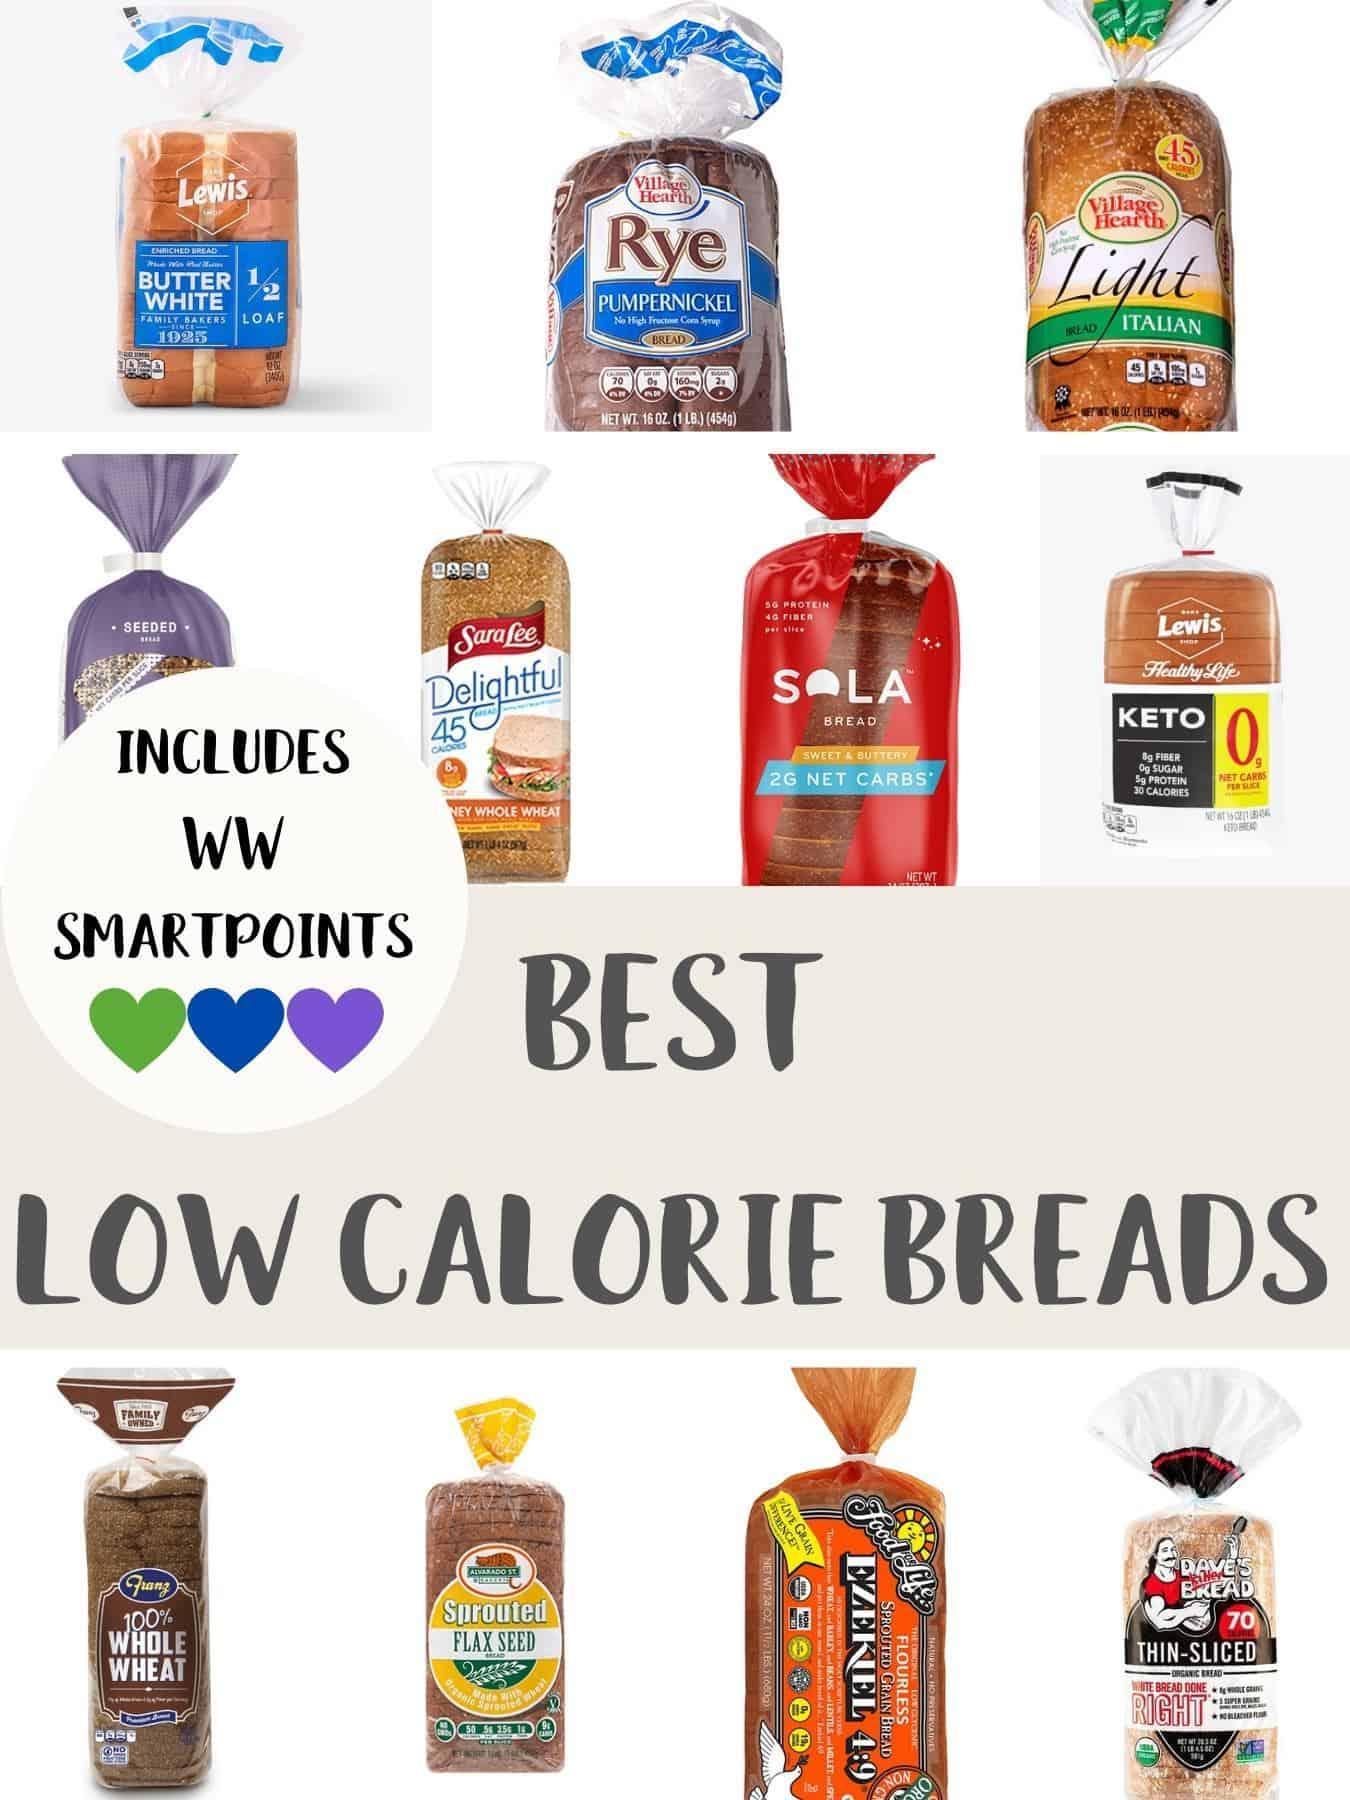 Photographs of packs of bread with text overlay stating Best Low Calorie Breads - includes WW SmartPoints.